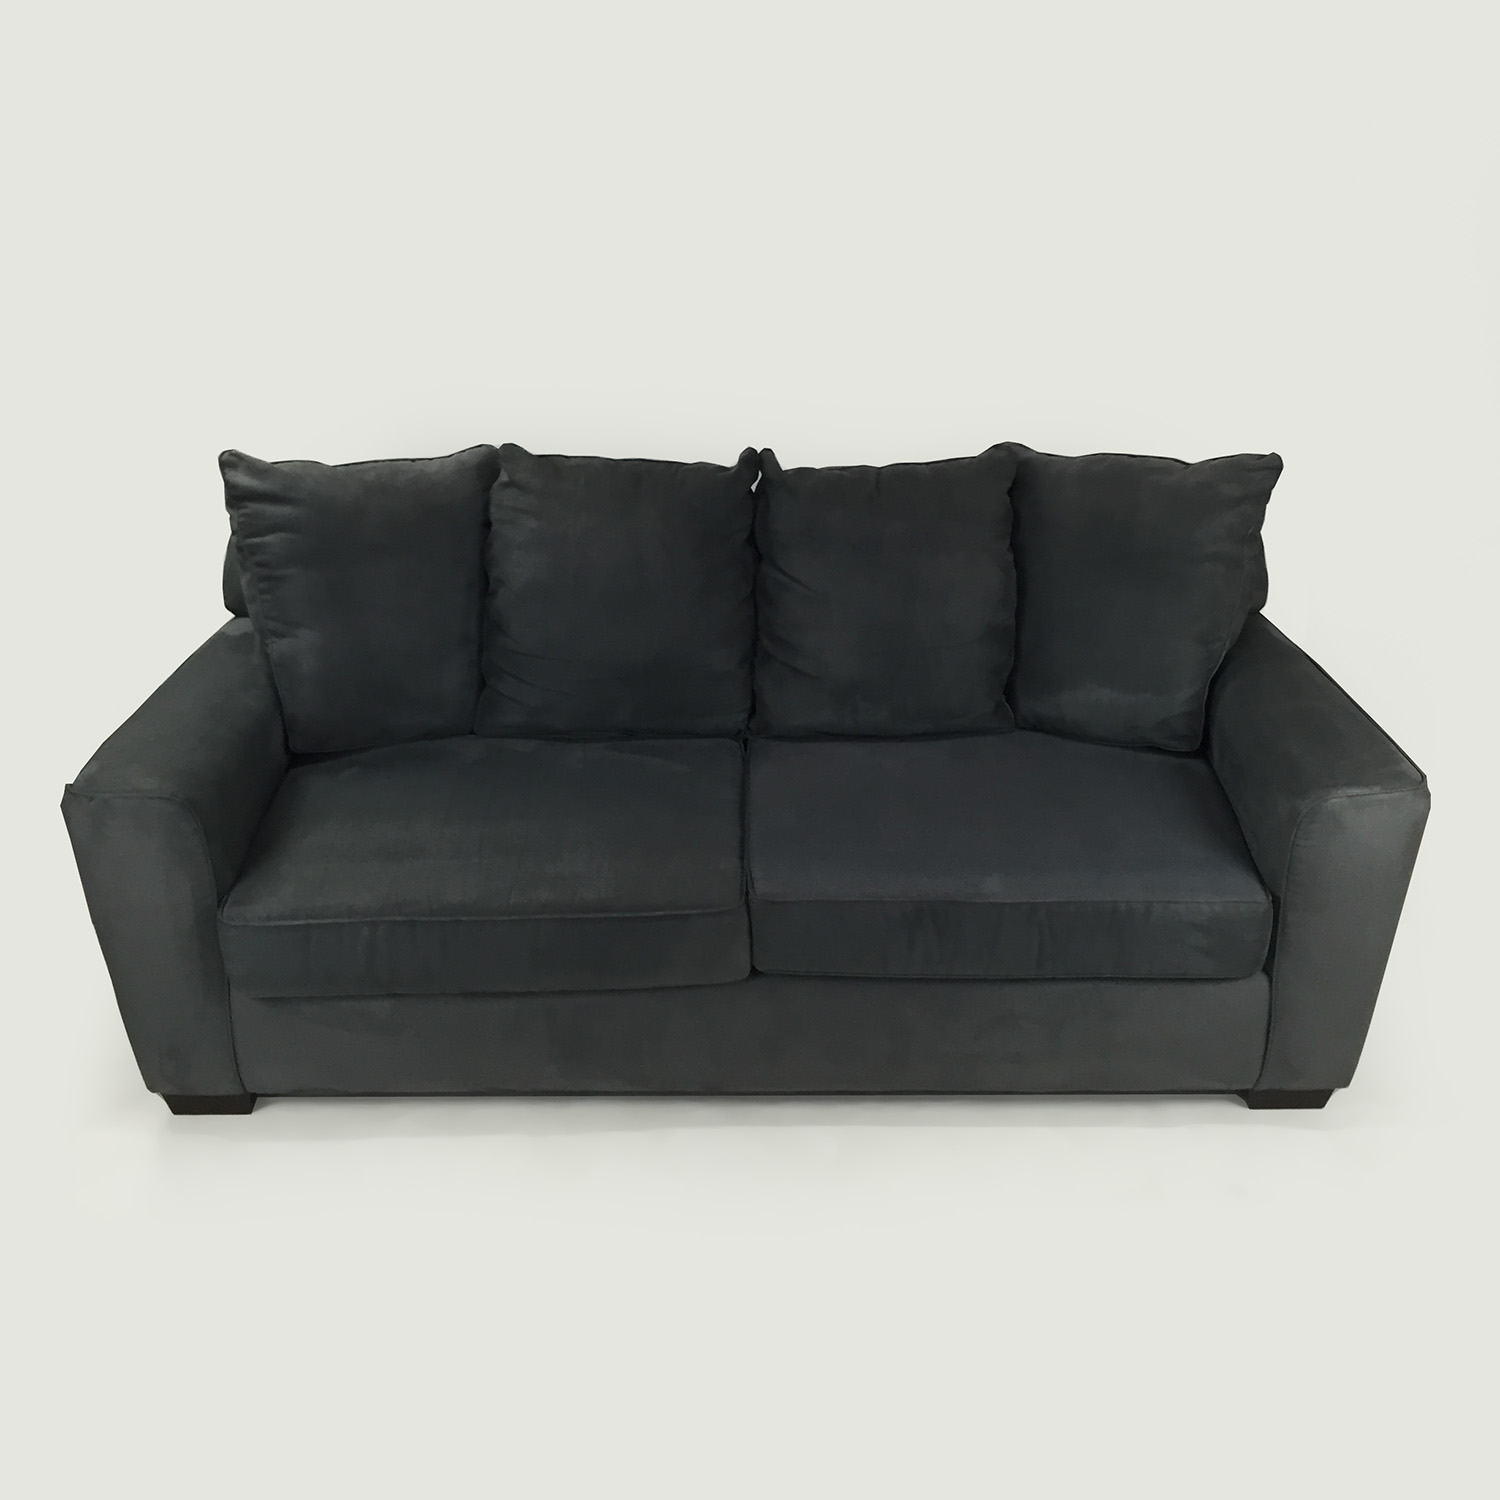 Raymour and Flanigan Raymour & Flanigan Microfiber Sofa price